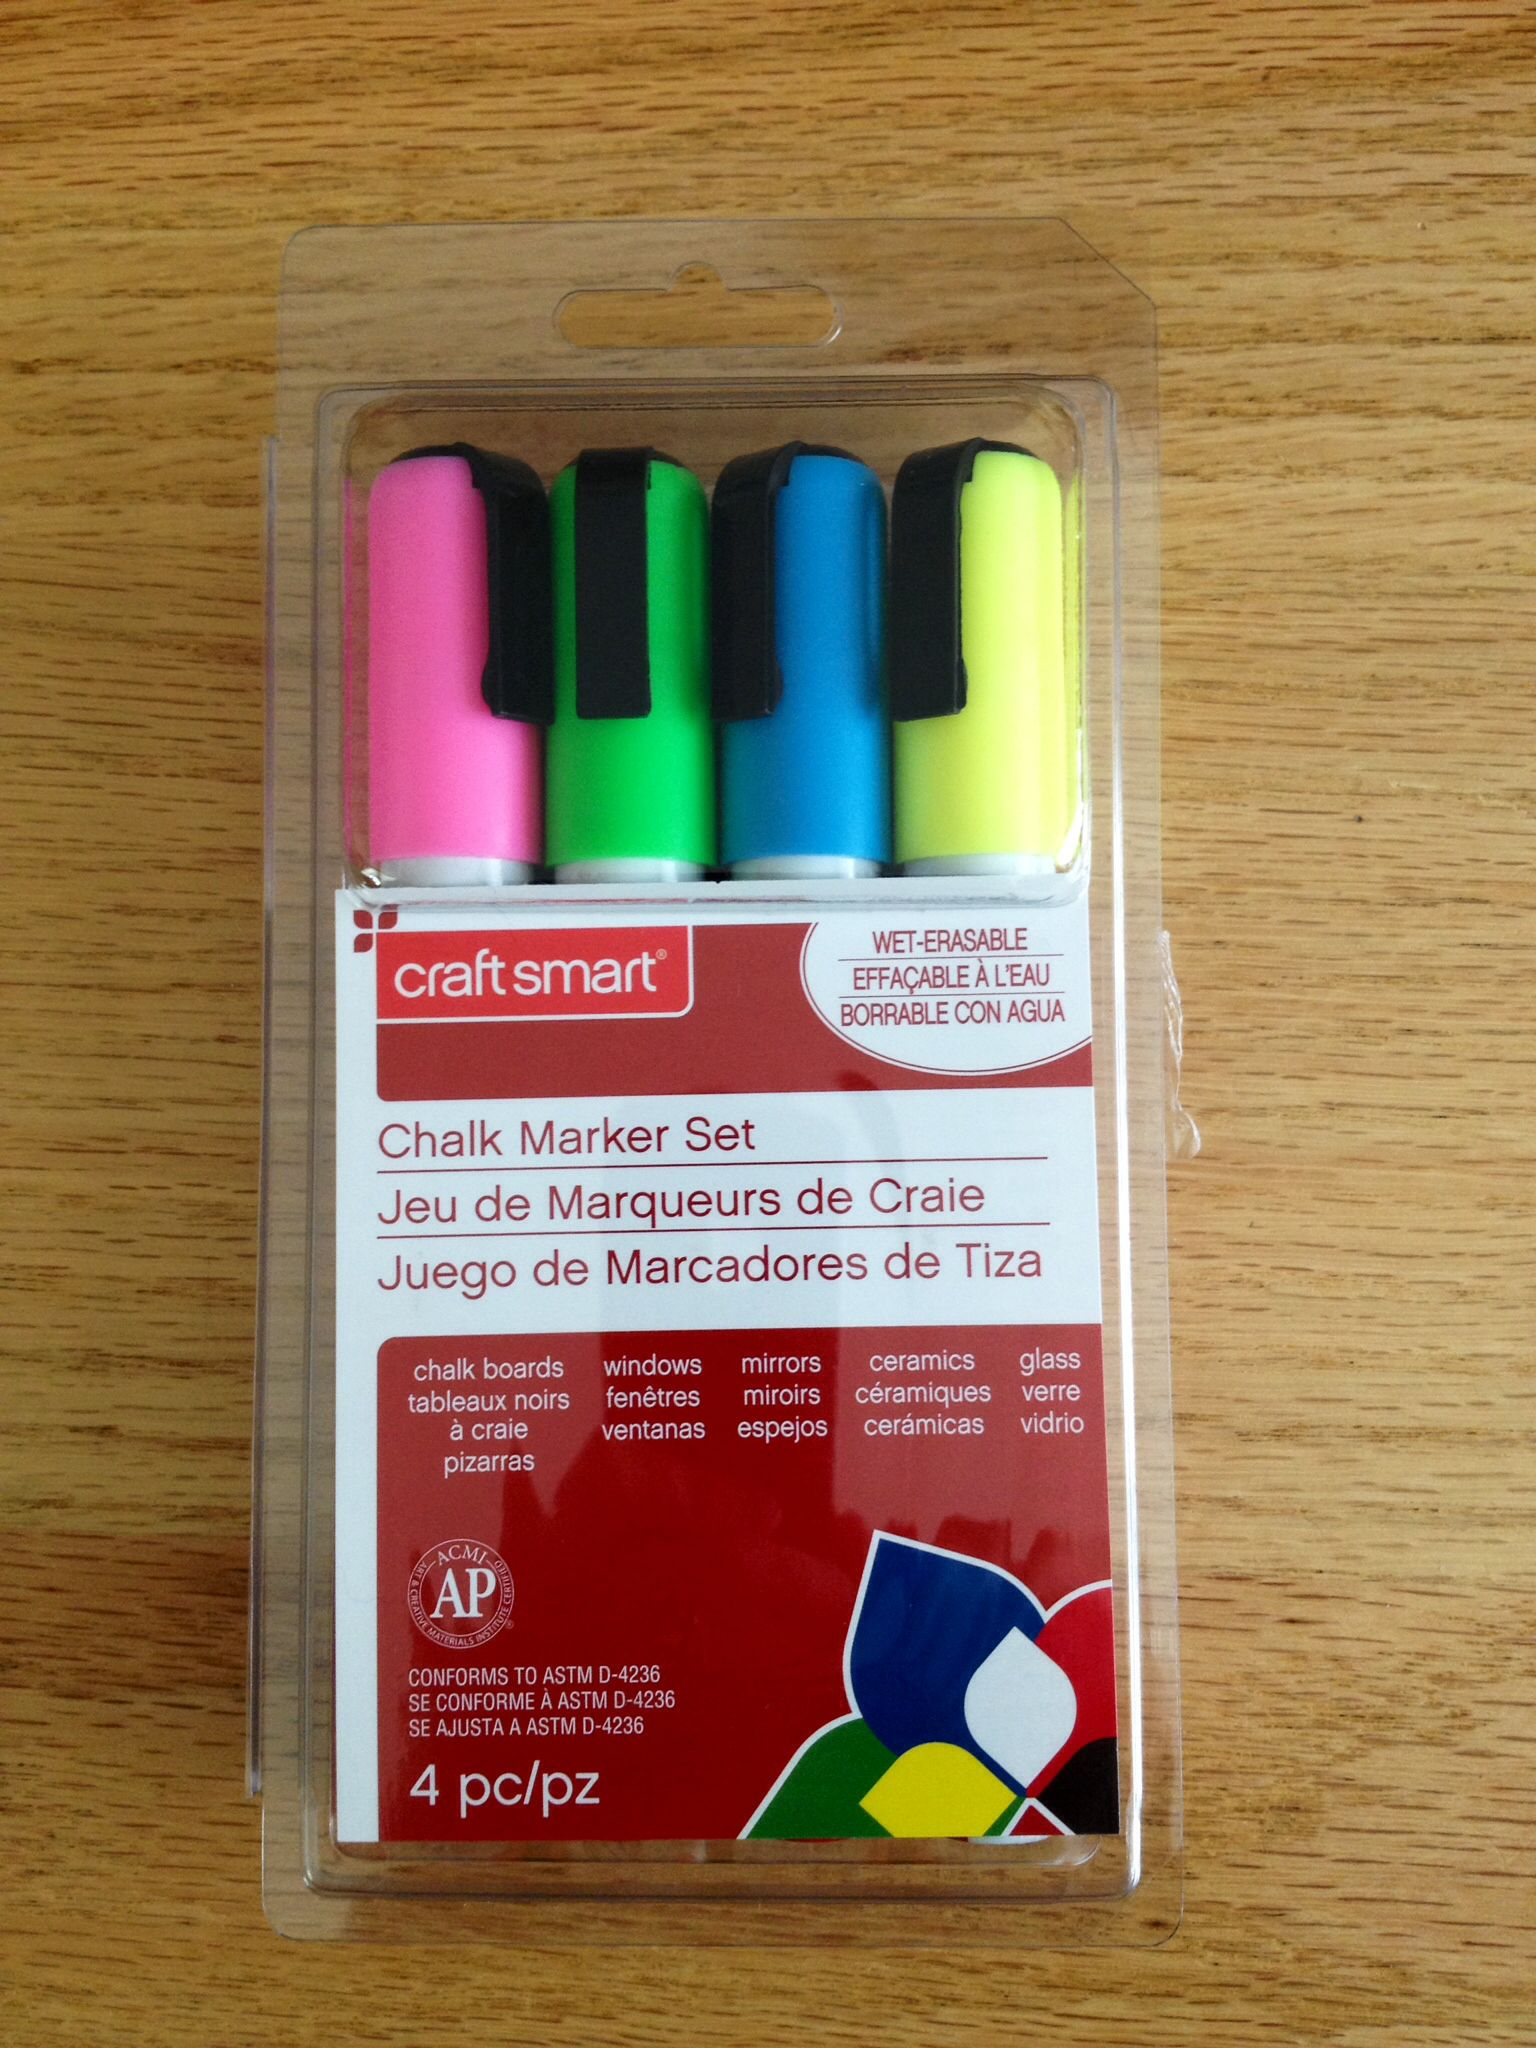 Craft Smart Chalk Marker Set Michaels 11 99 Chalk Markers Markers Set Markers